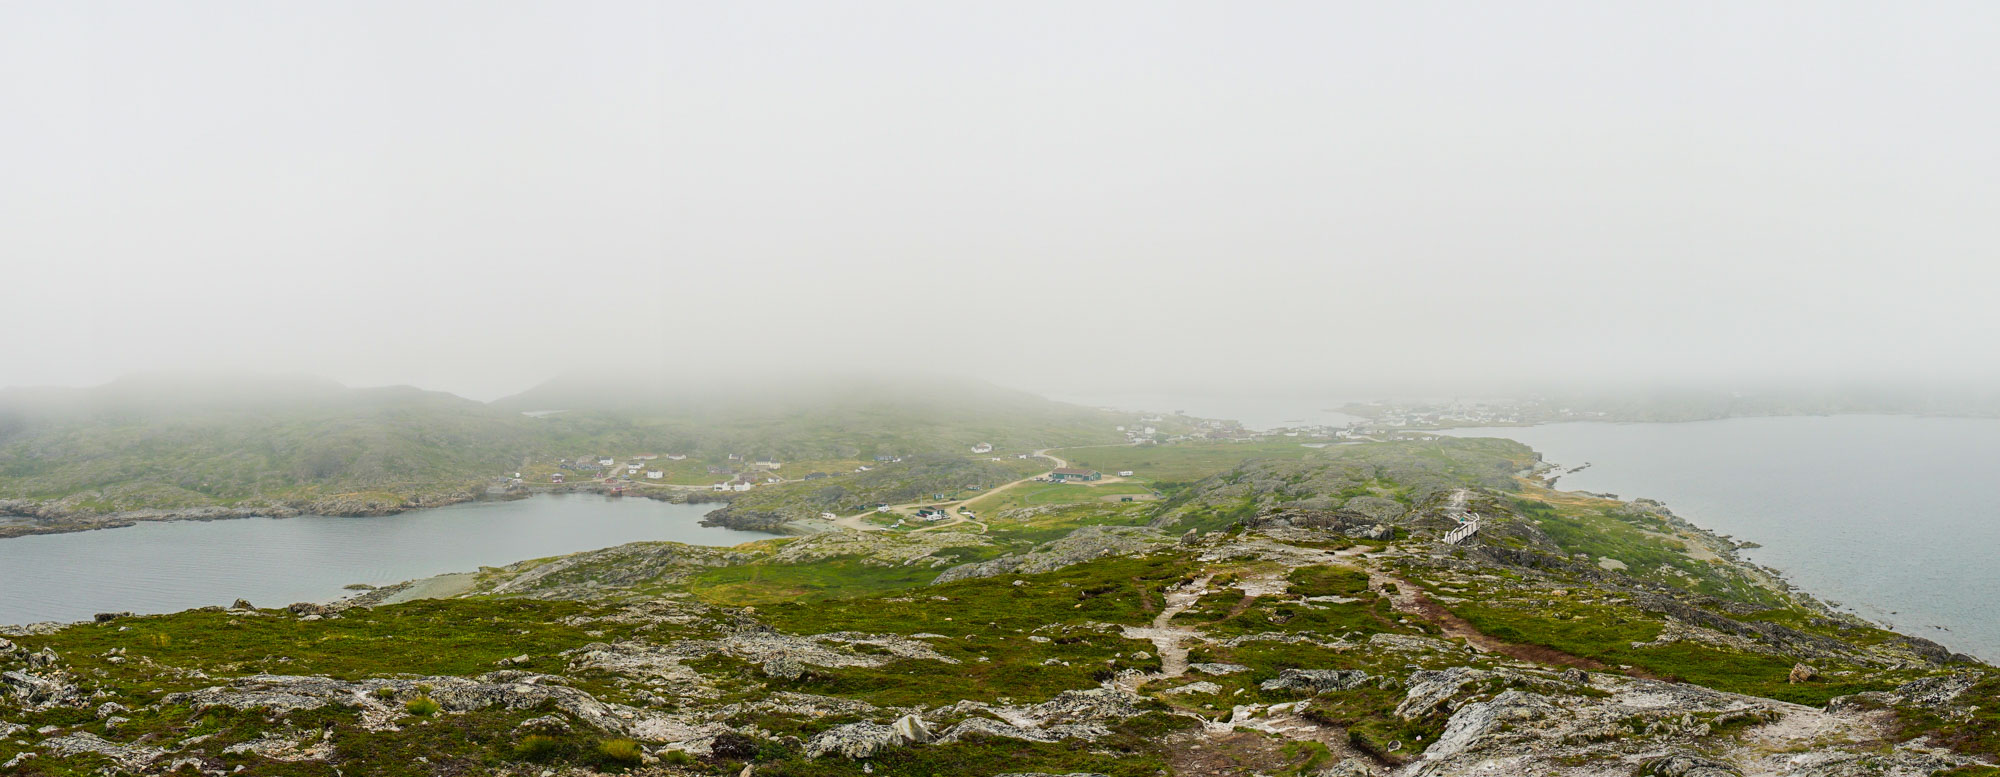 The view back at the city of Fogo